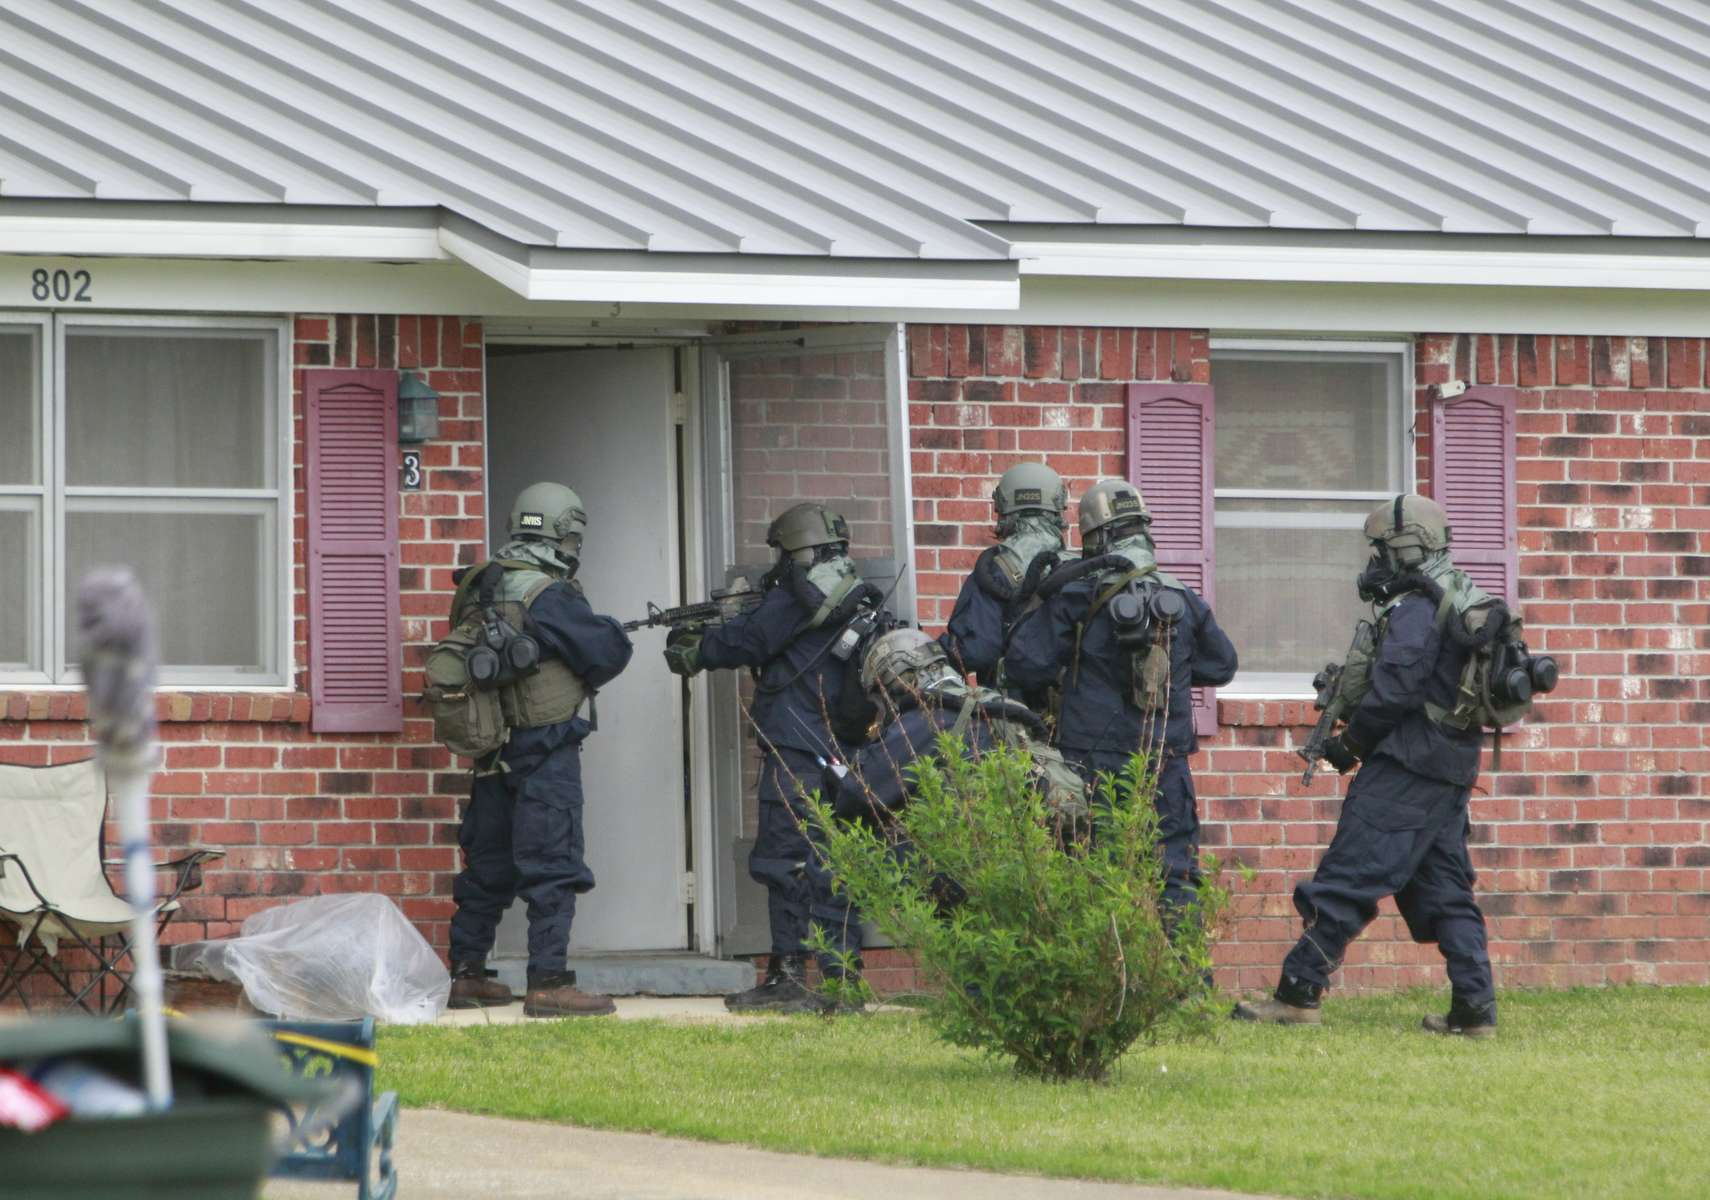 Federal agents wearing hazmat suits raided the home of Paul Kevin Curtis,45, who was arrested for allegedly sending letters containing ricin to President Barack Obama and Senator Roger Wicker, R-Mississippi, located at 802 Redwood Drive in Corinth, Mississippi on Thursday, April 18, 2013.